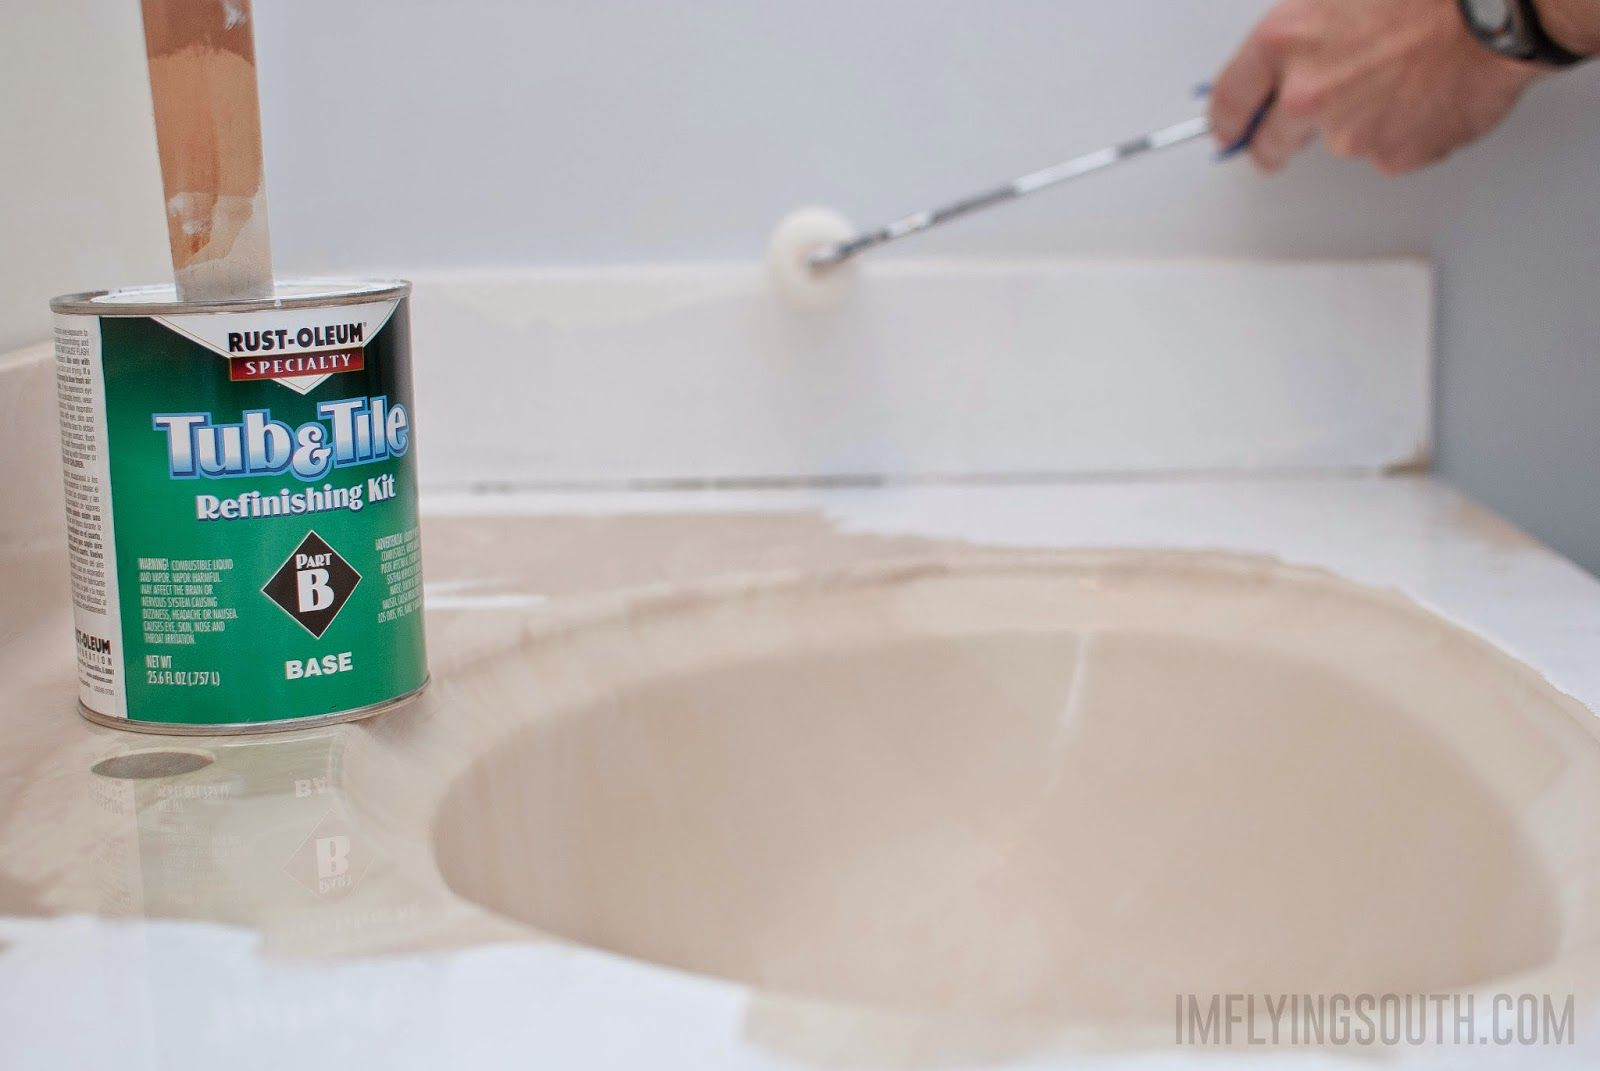 Use Rustoluem Tub And Tile Paint To Refinish An Integral